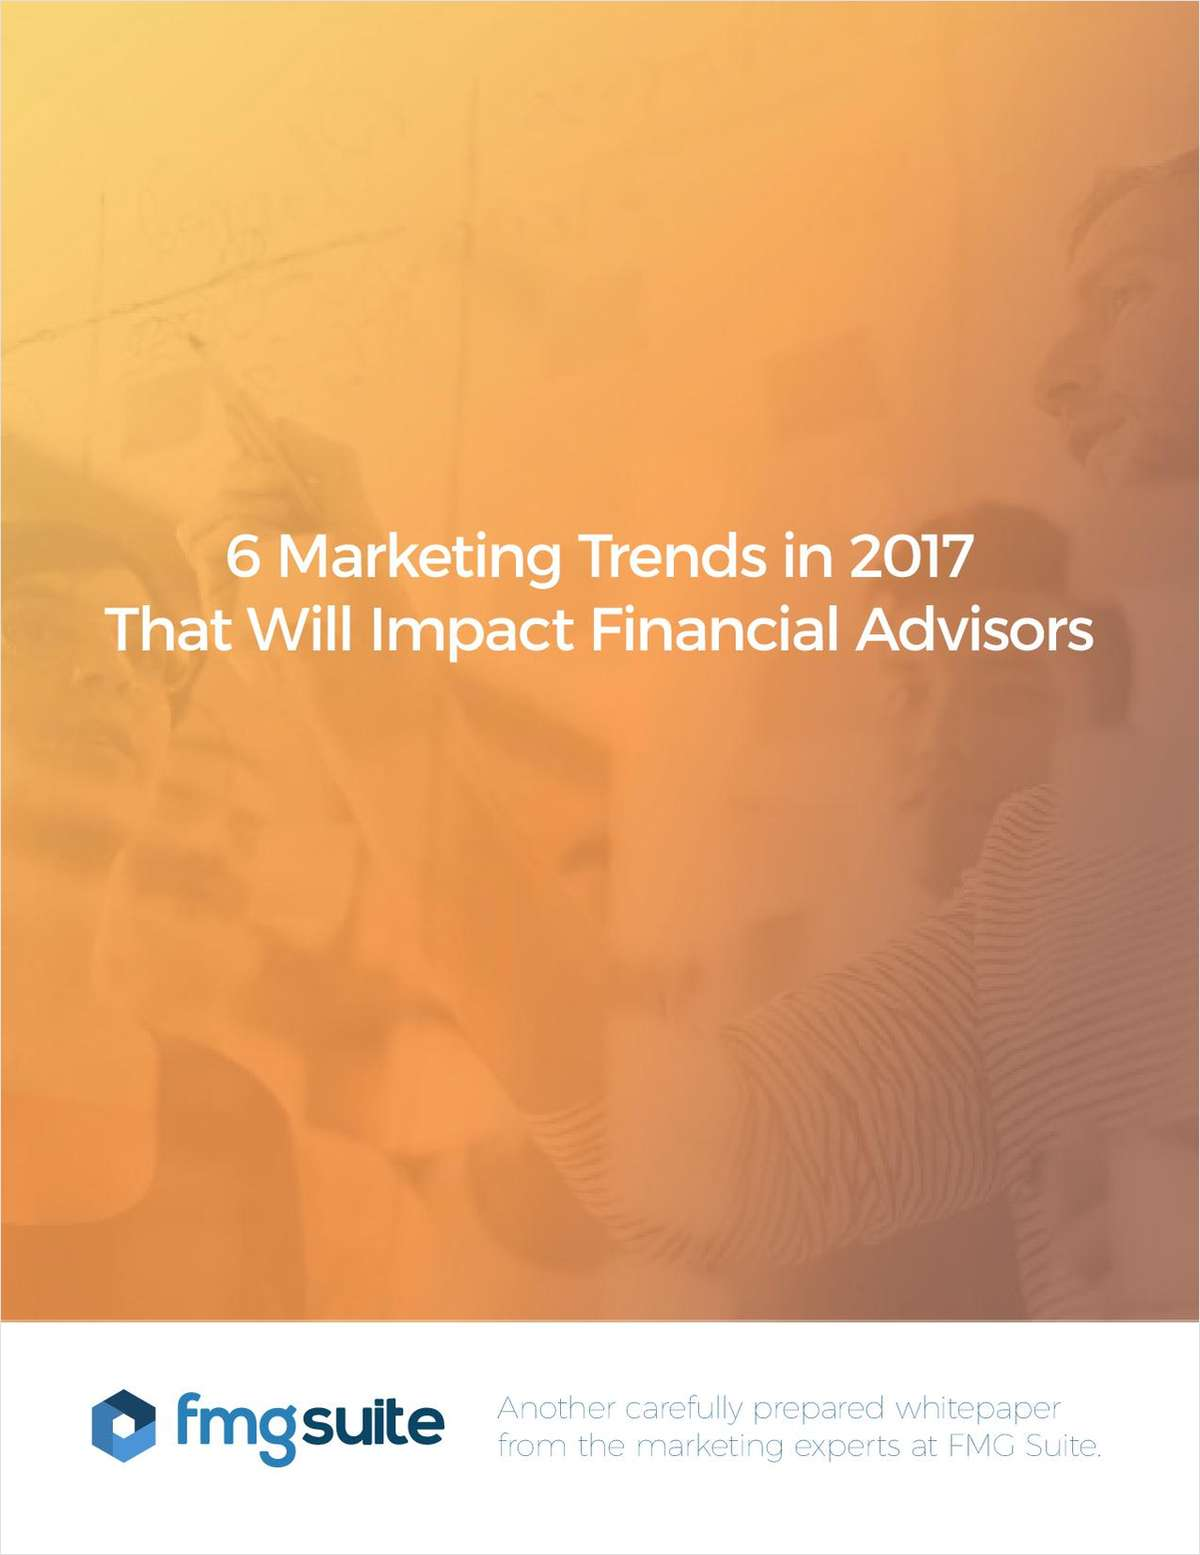 6 Marketing Trends That Will Impact Financial Advisors